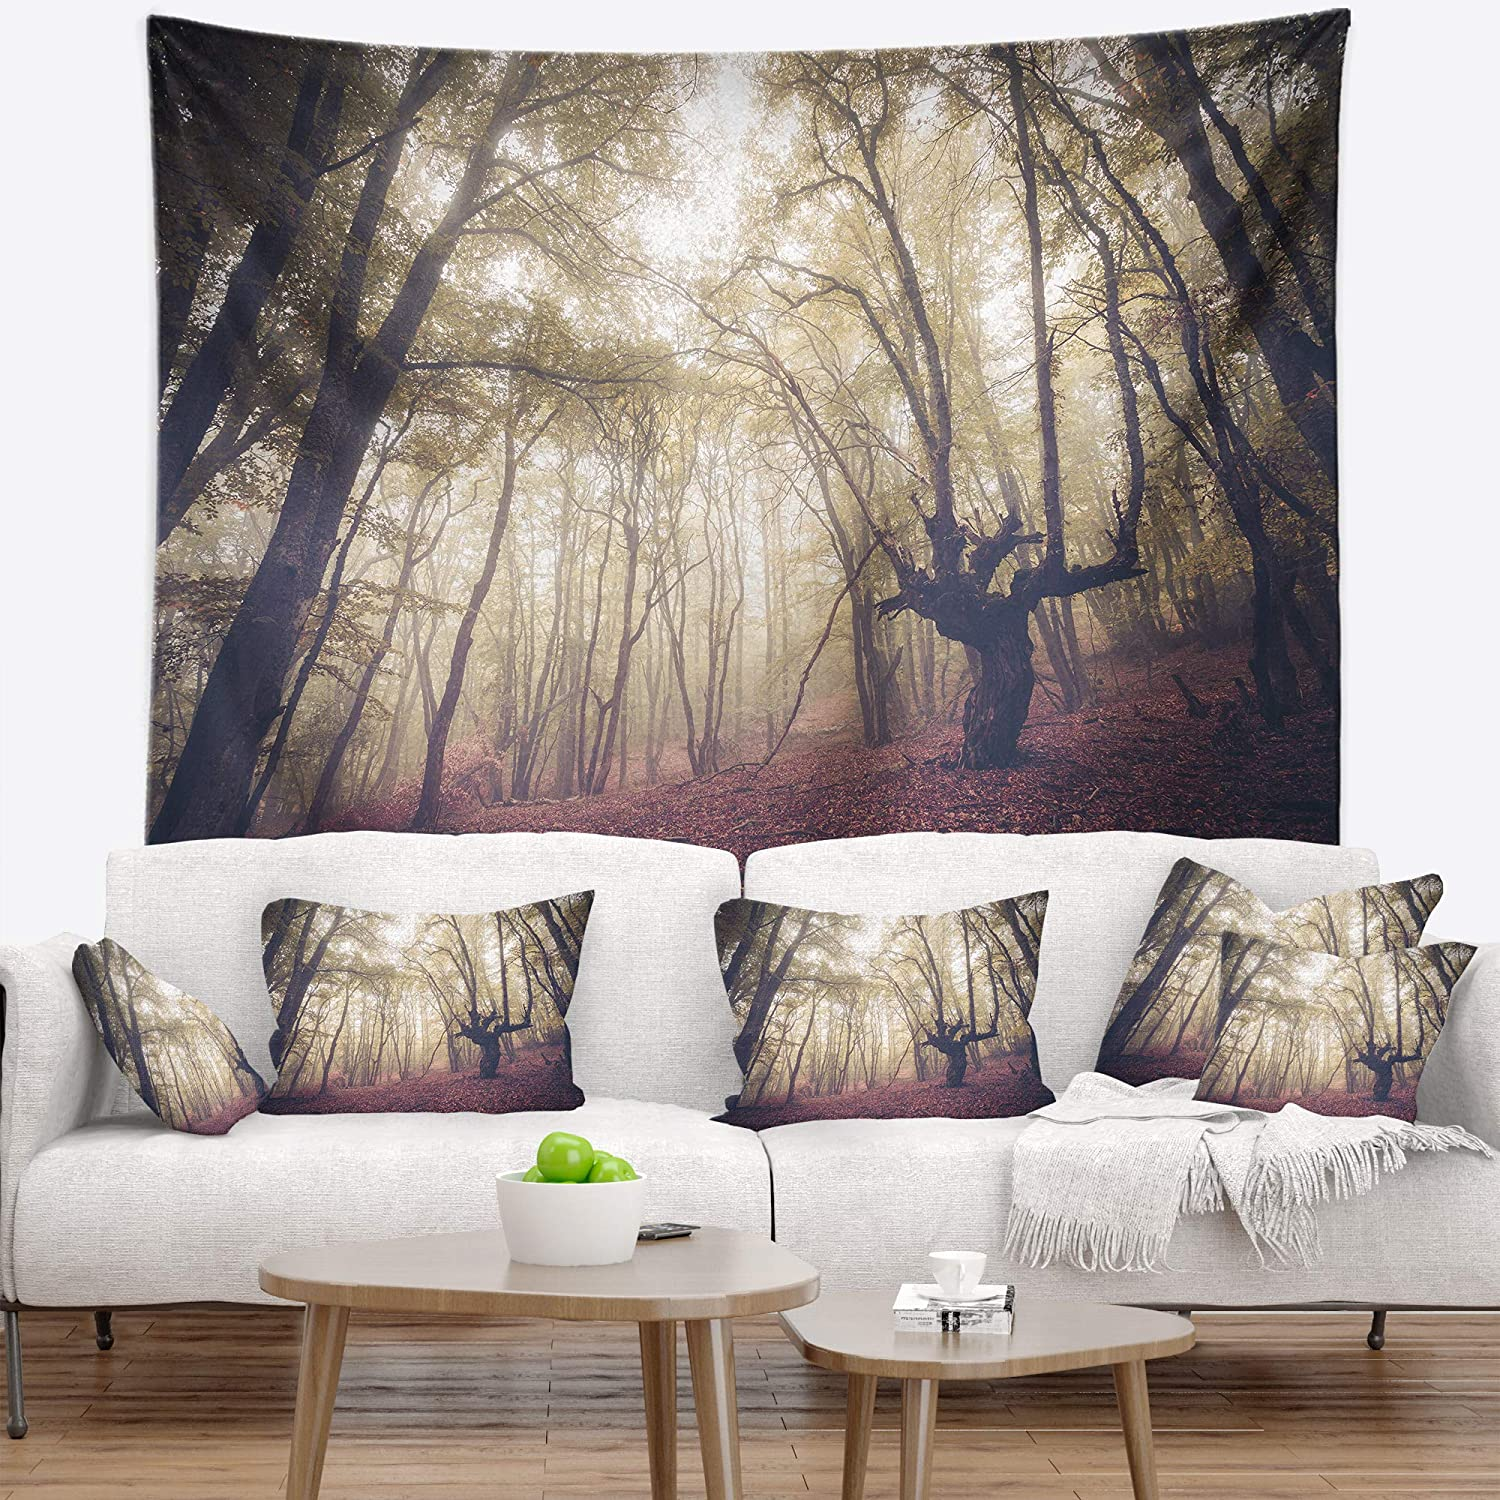 x 68 in Designart TAP8474-80-68  High Rise Trees in Forest Landscape Photography Blanket D/écor Art for Home and Office Wall Tapestry x Large 80 in Created On Lightweight Polyester Fabric